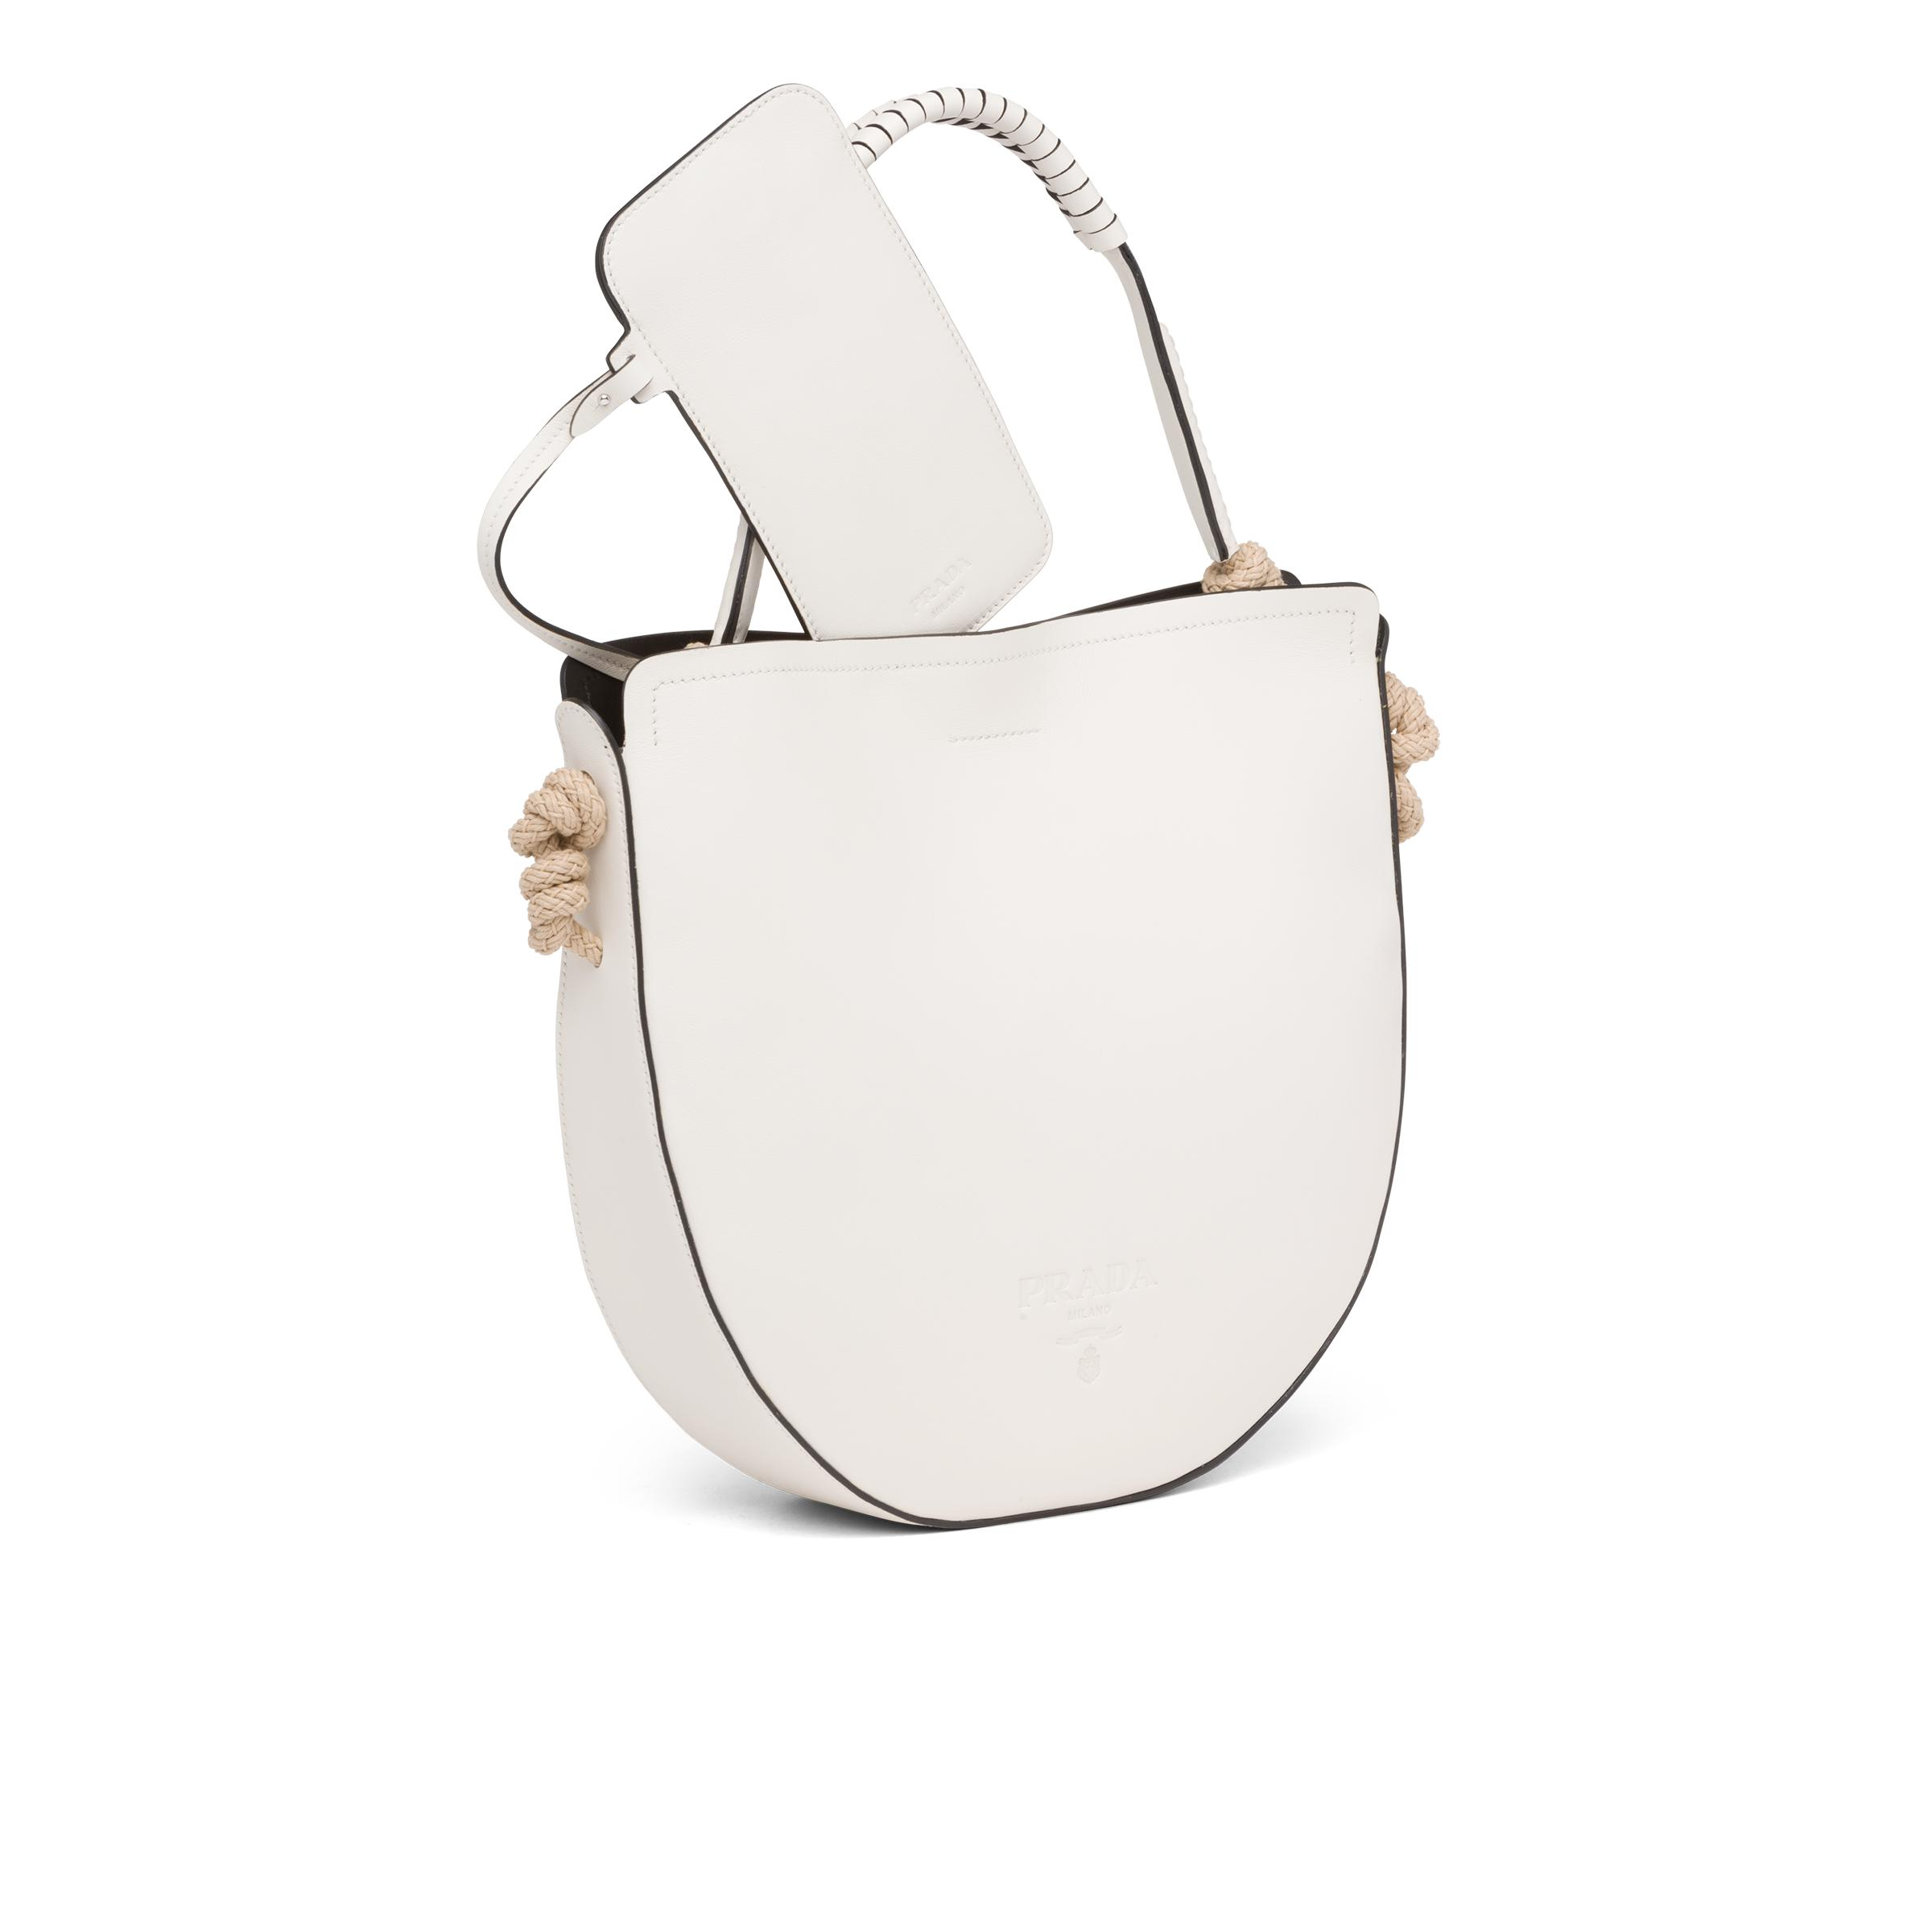 Leather Bag With Cord Details Women White/black 5